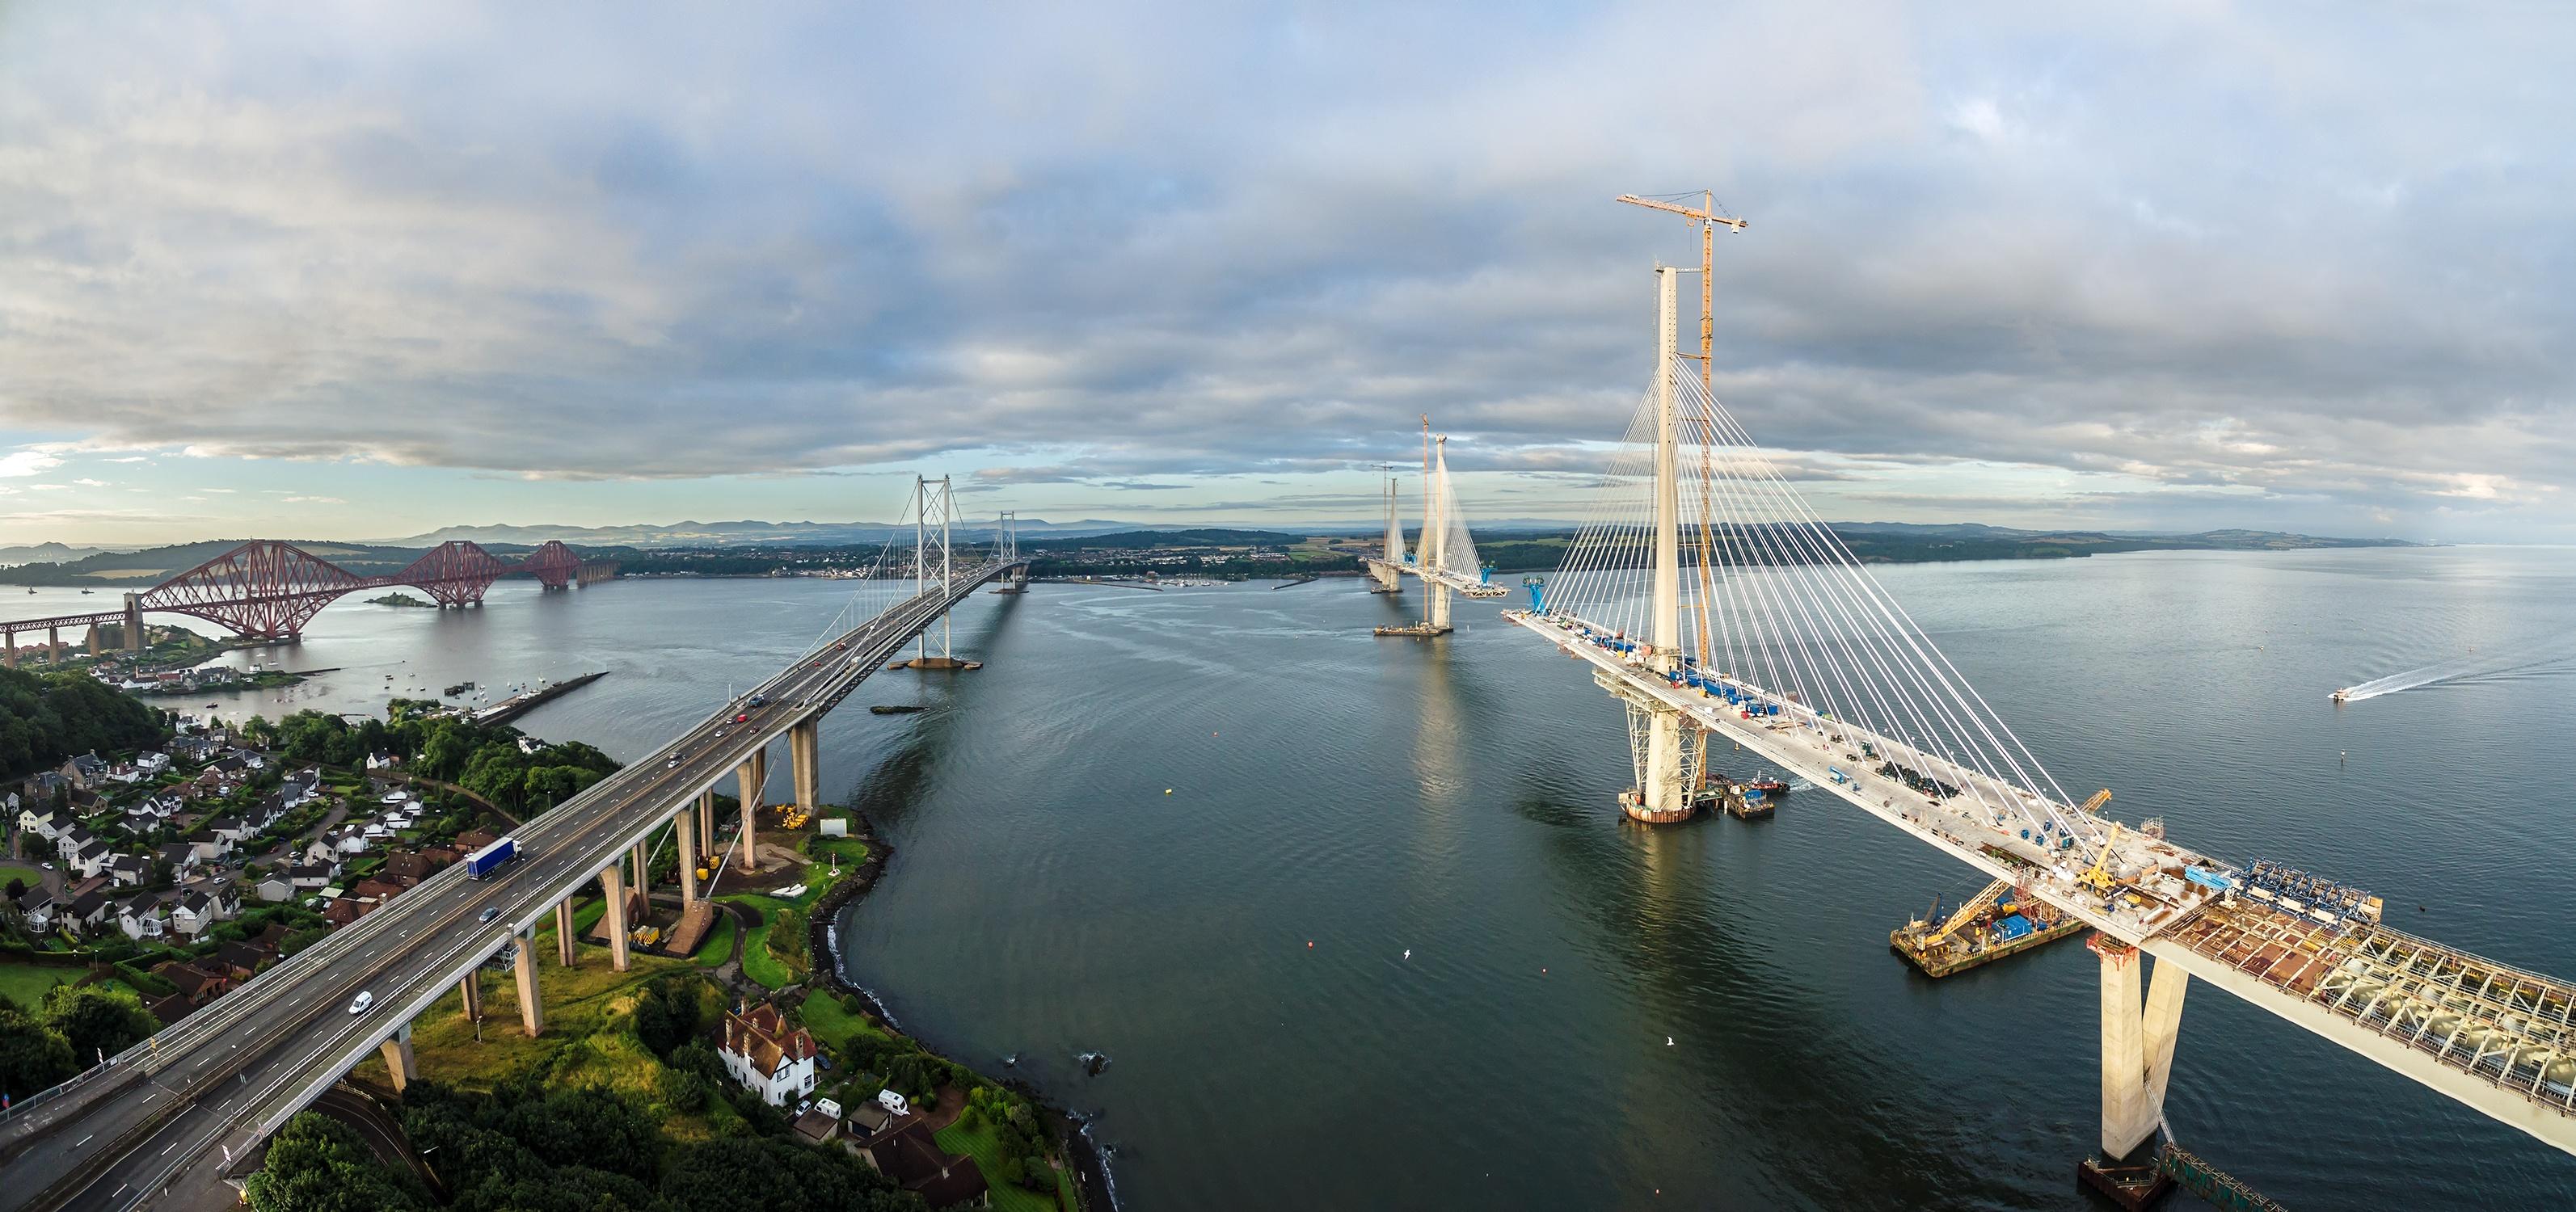 The Queensferry Crossing near Edinburgh in Scotland